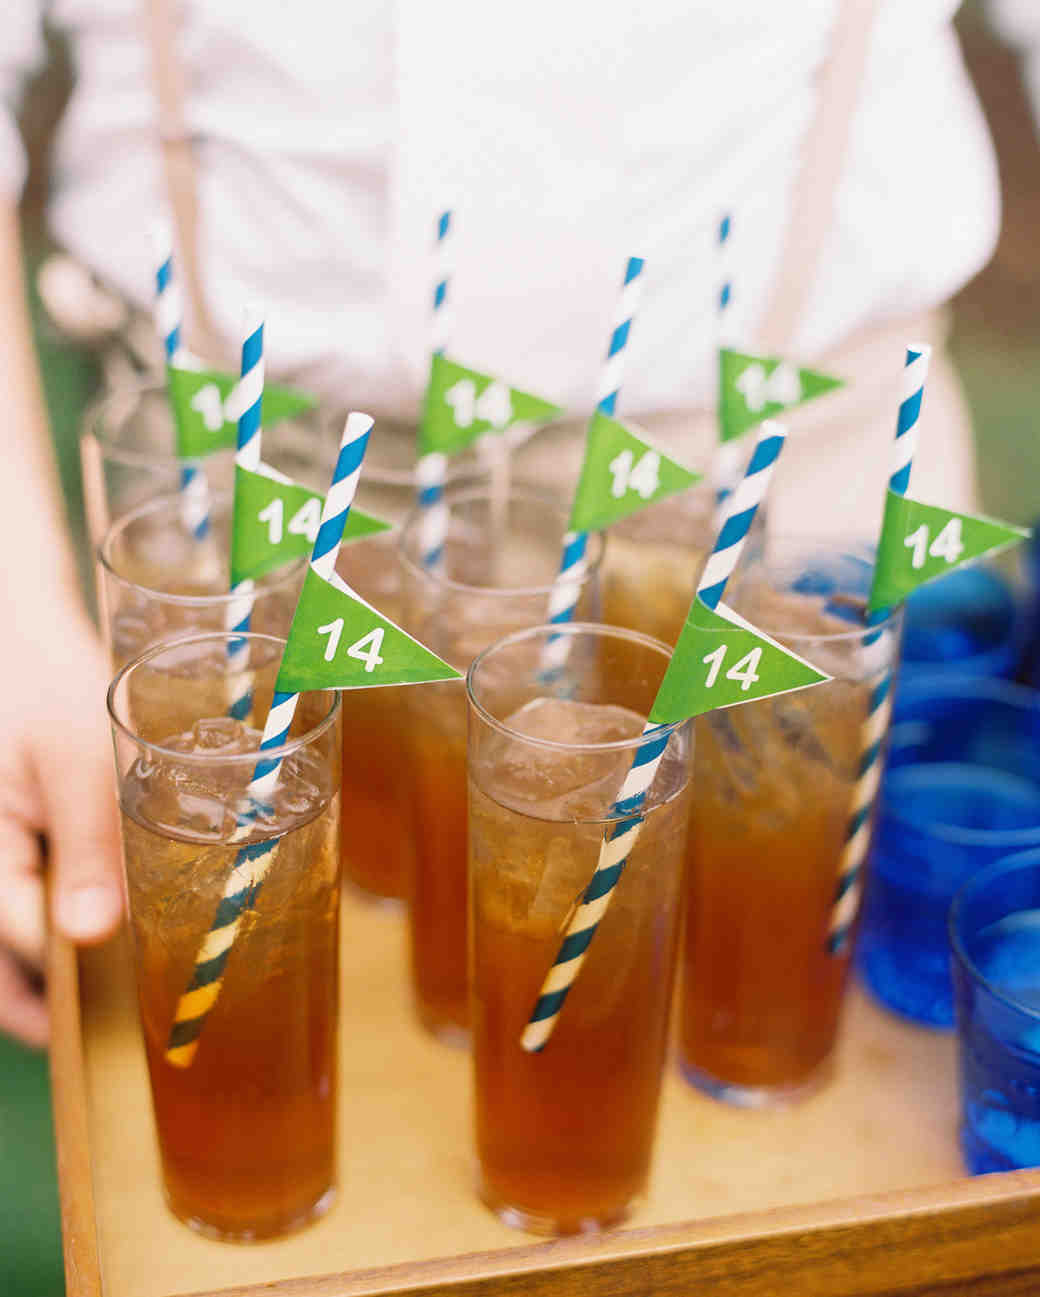 kendall nick wedding drinks with straws